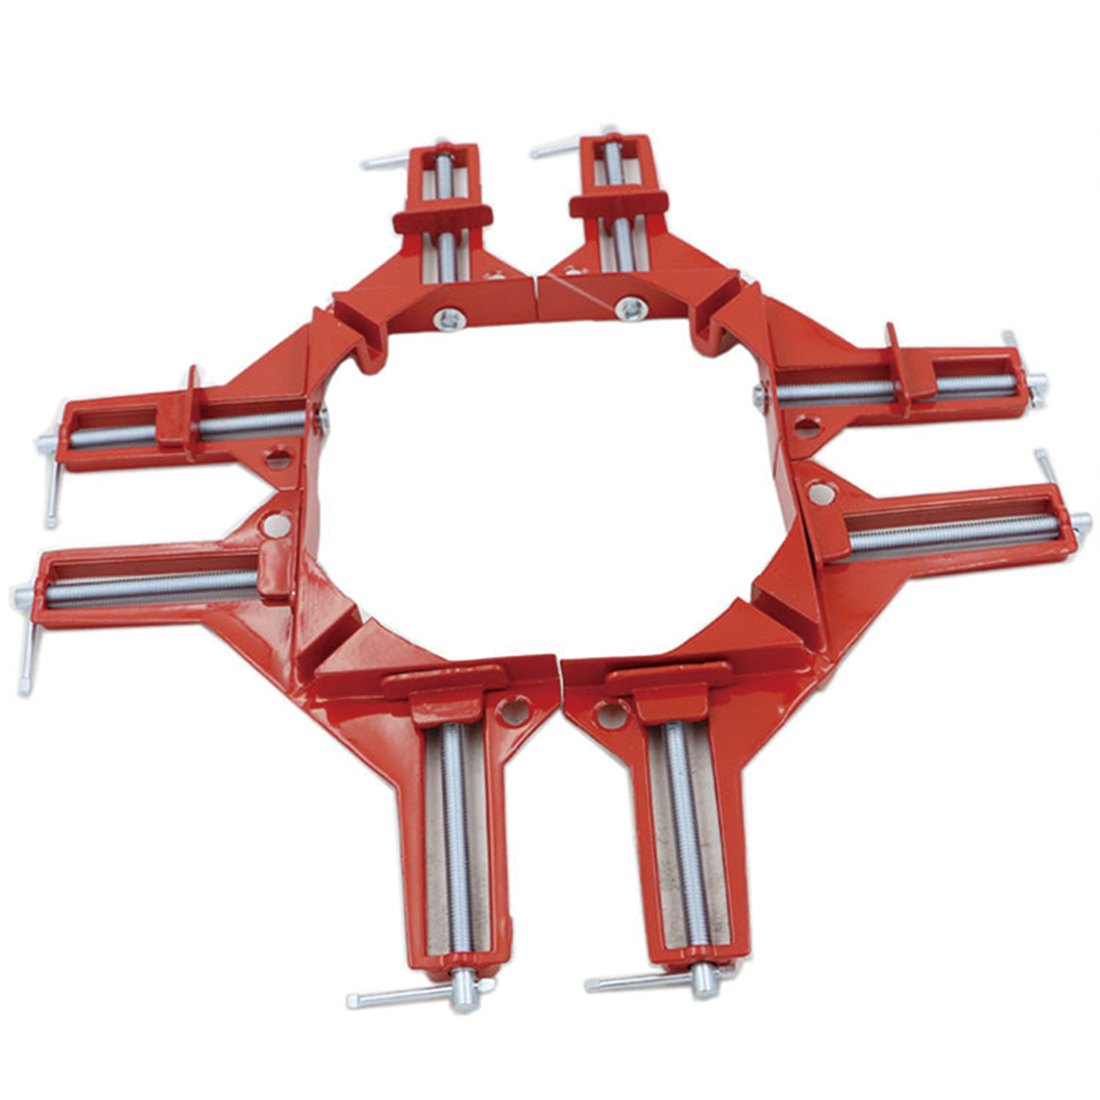 4pcs Style 90 Degrees Angle Clamp Right Angle Woodworking Frame Clamp DIY Glass